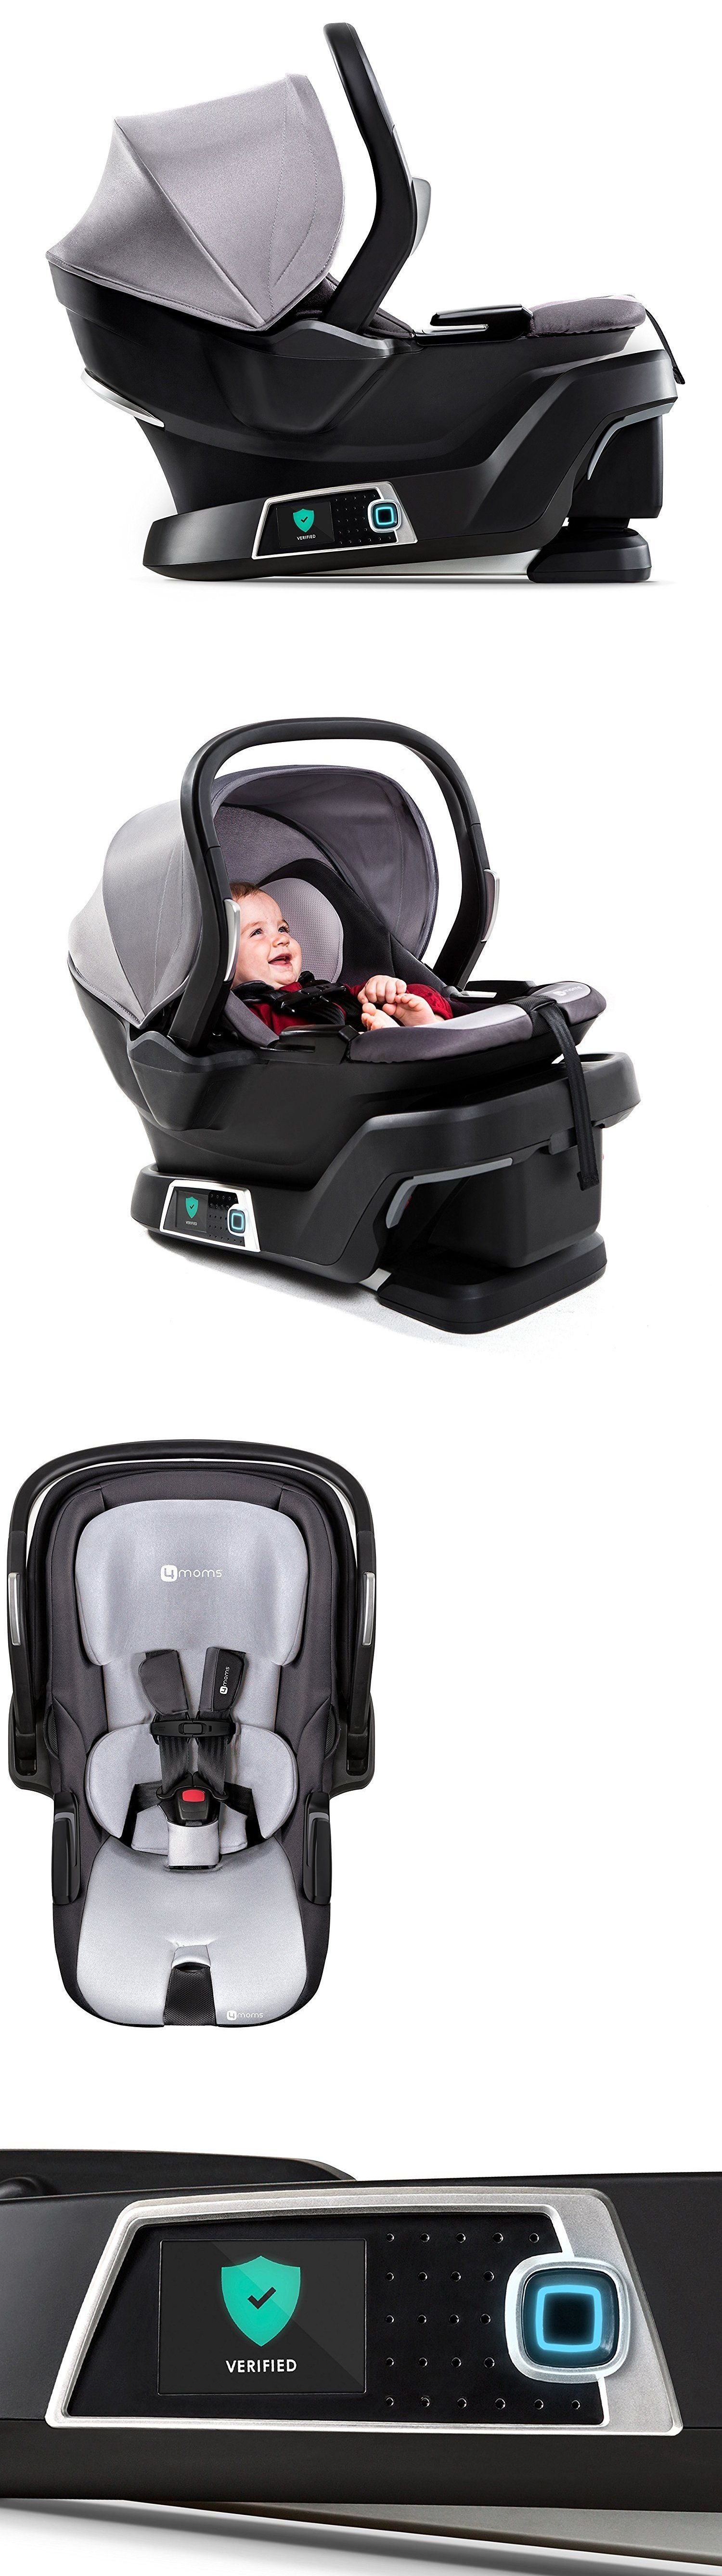 Other Car Safety Seats 2987 4Moms Self Installing Seat BUY IT